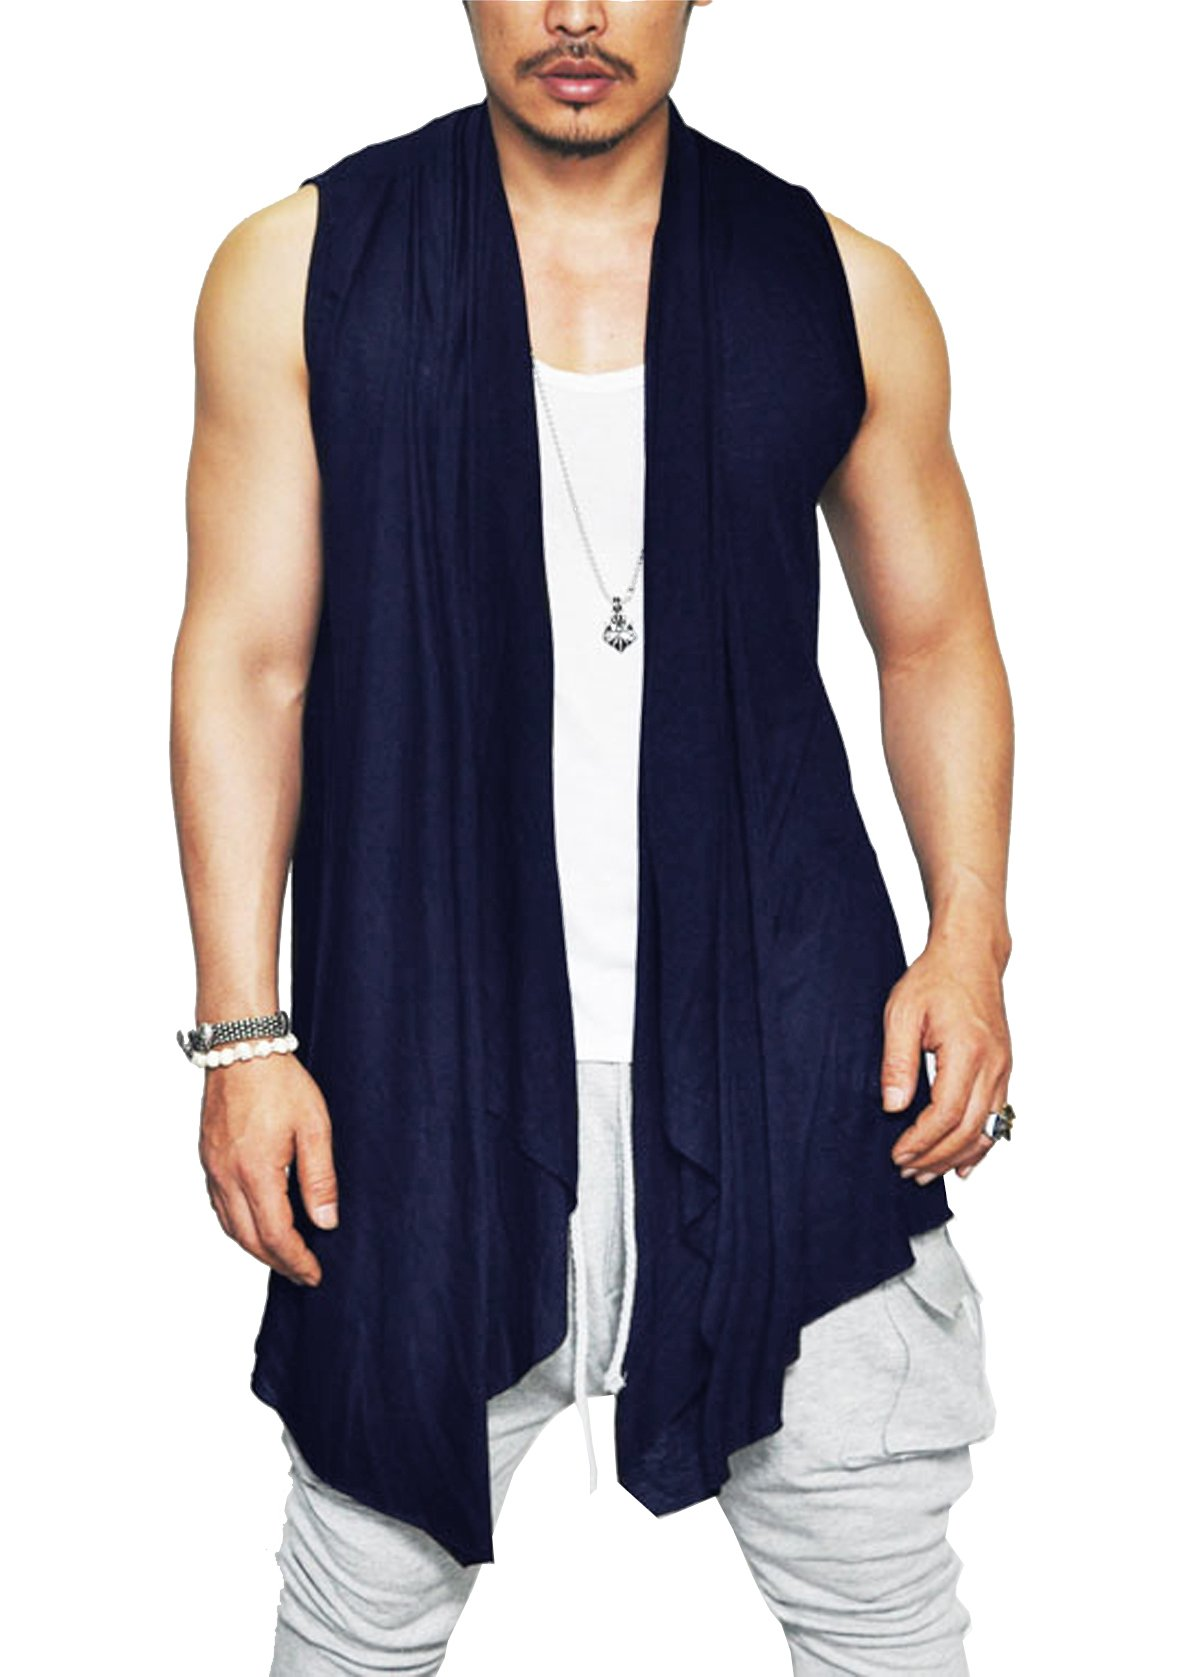 Coofandy Men's Ruffle Shawl Collar Sleeveless Long Cardigan Vest,Navy Blue,X-Large